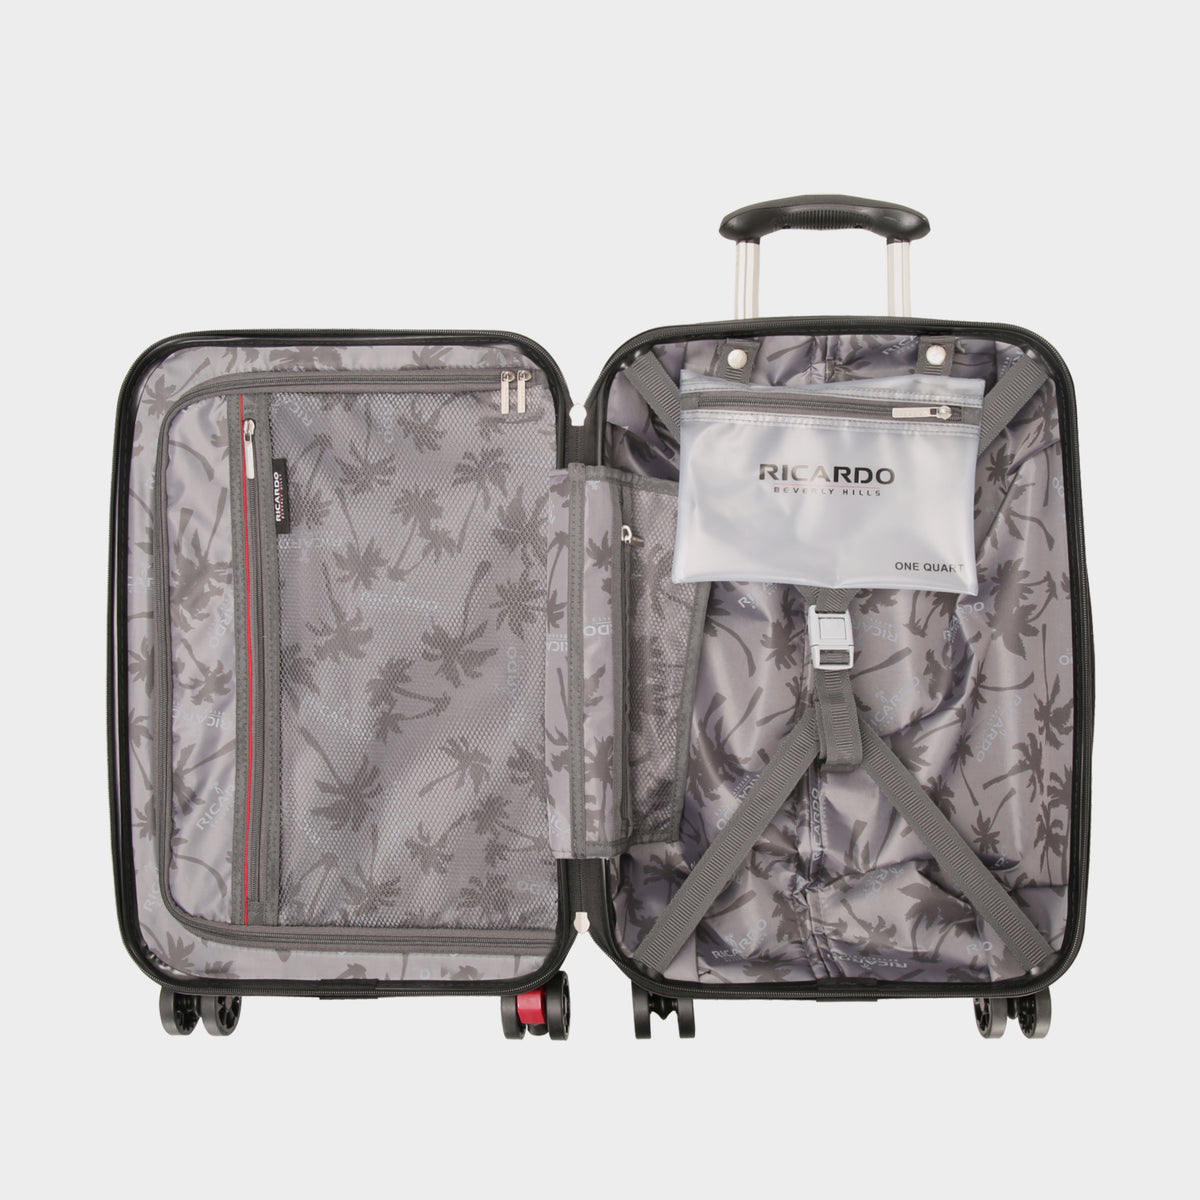 ... Carry-On San Clemente 21-Inch Carry-On Suitcase in Moon Silver Open ... 10691900dab72